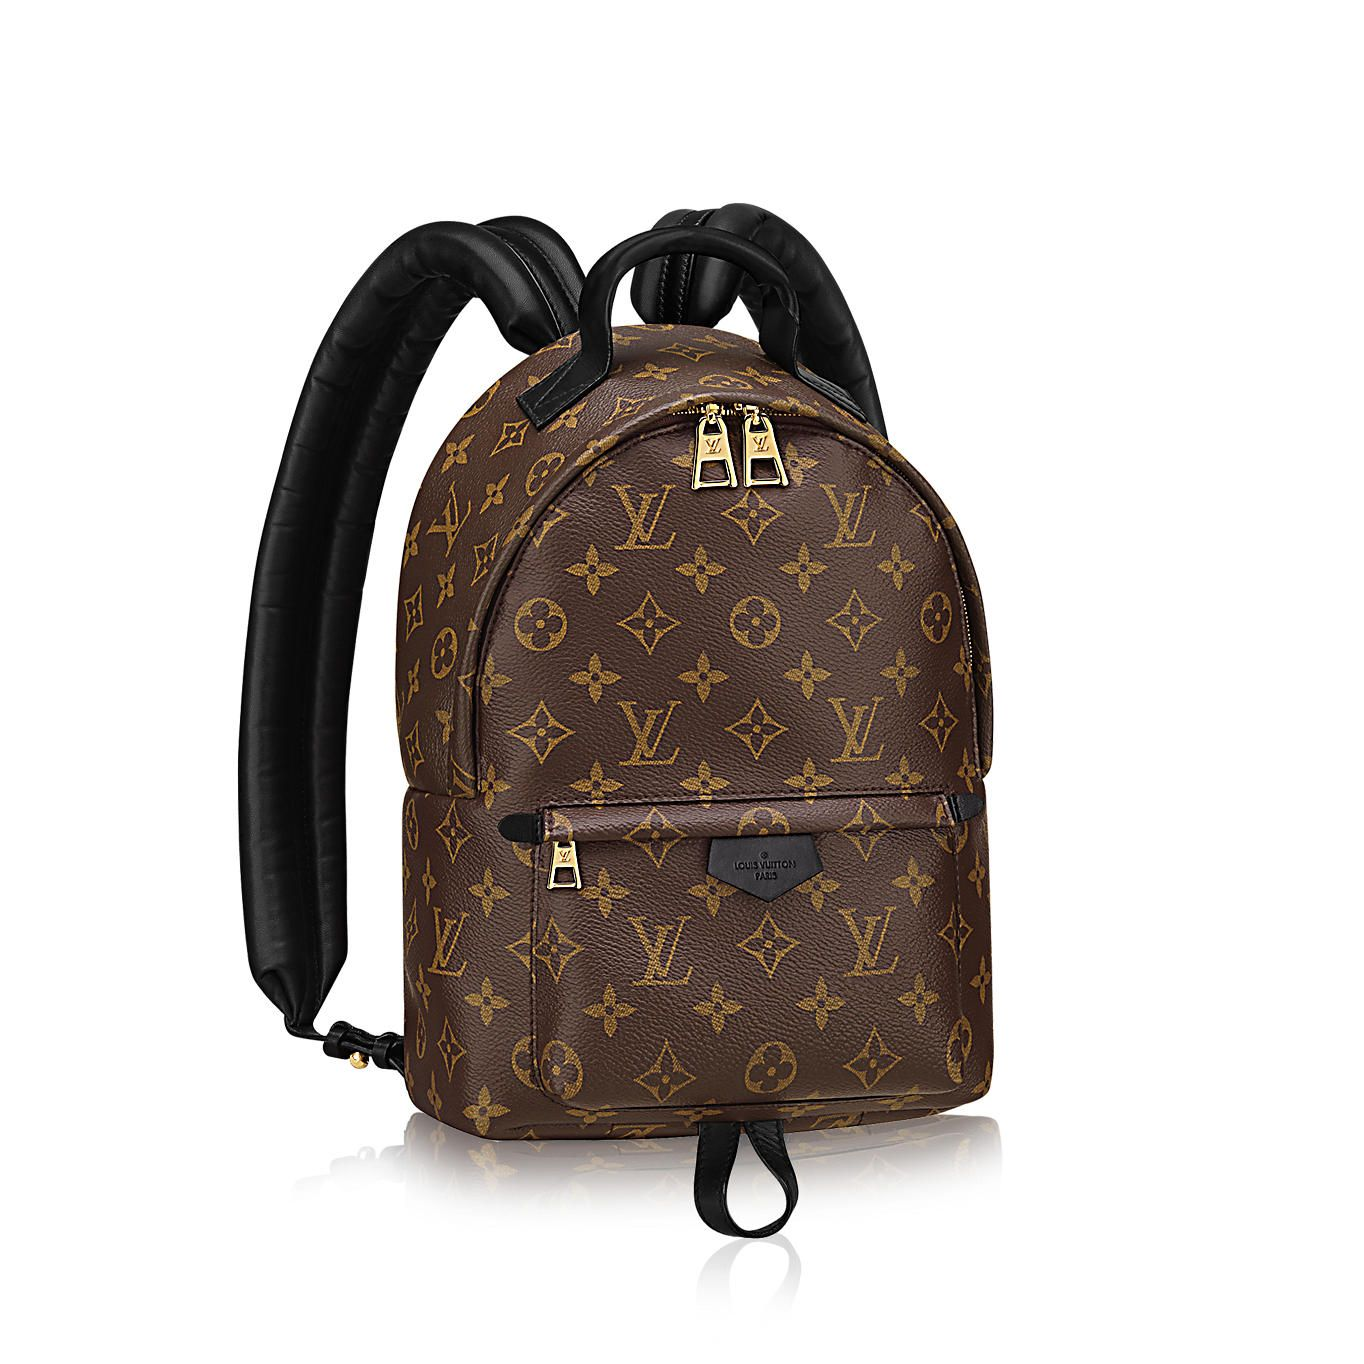 Women s Luxury Christmas Gift - Palm Springs Backpack PM Monogram Canvas  Women Handbags  9fcd281e7d609